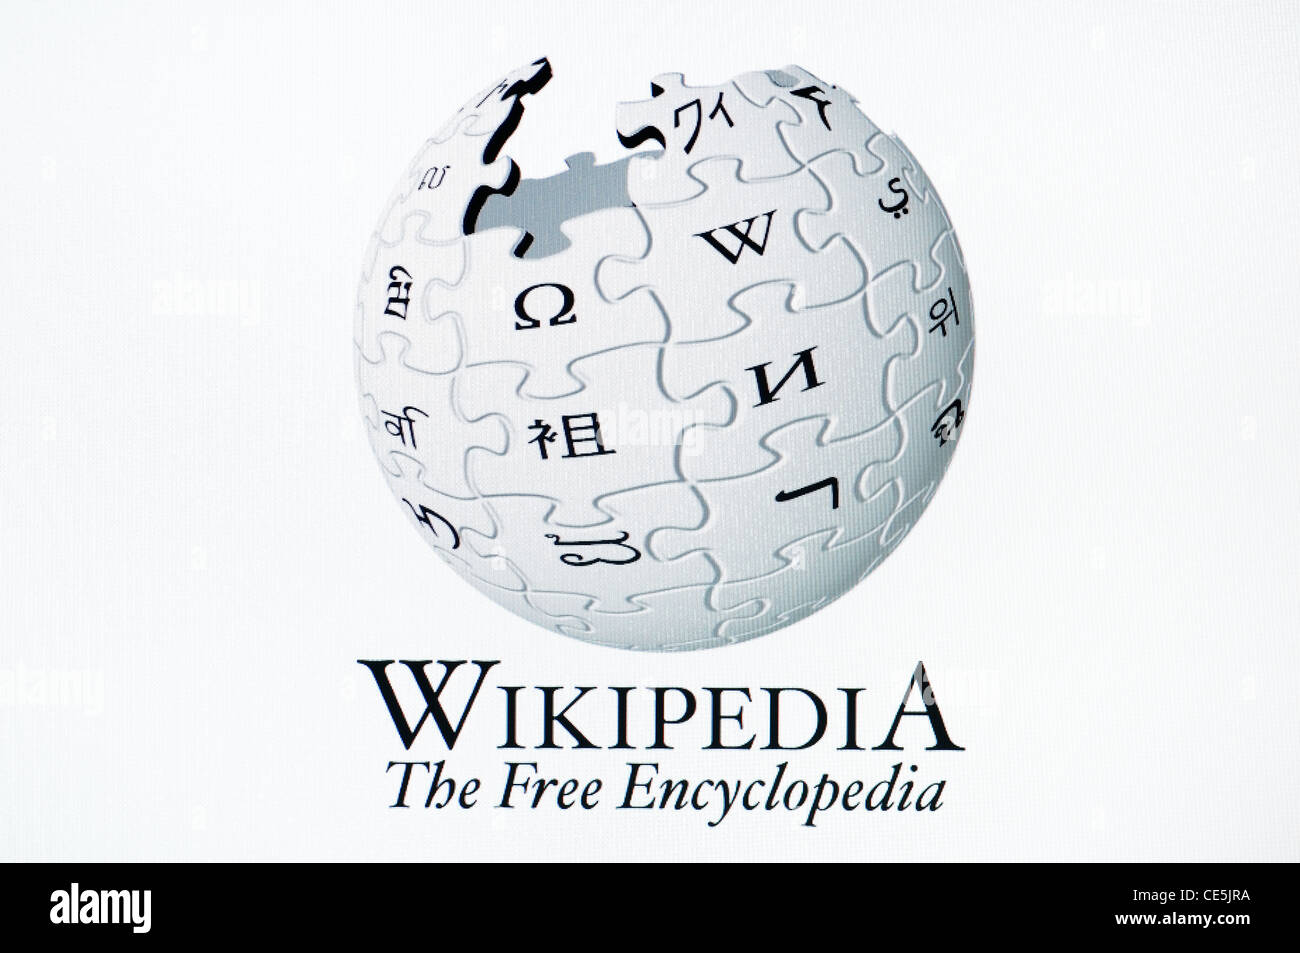 Wikipedia the Online Encyclopedia, Screenshot. - Stock Image